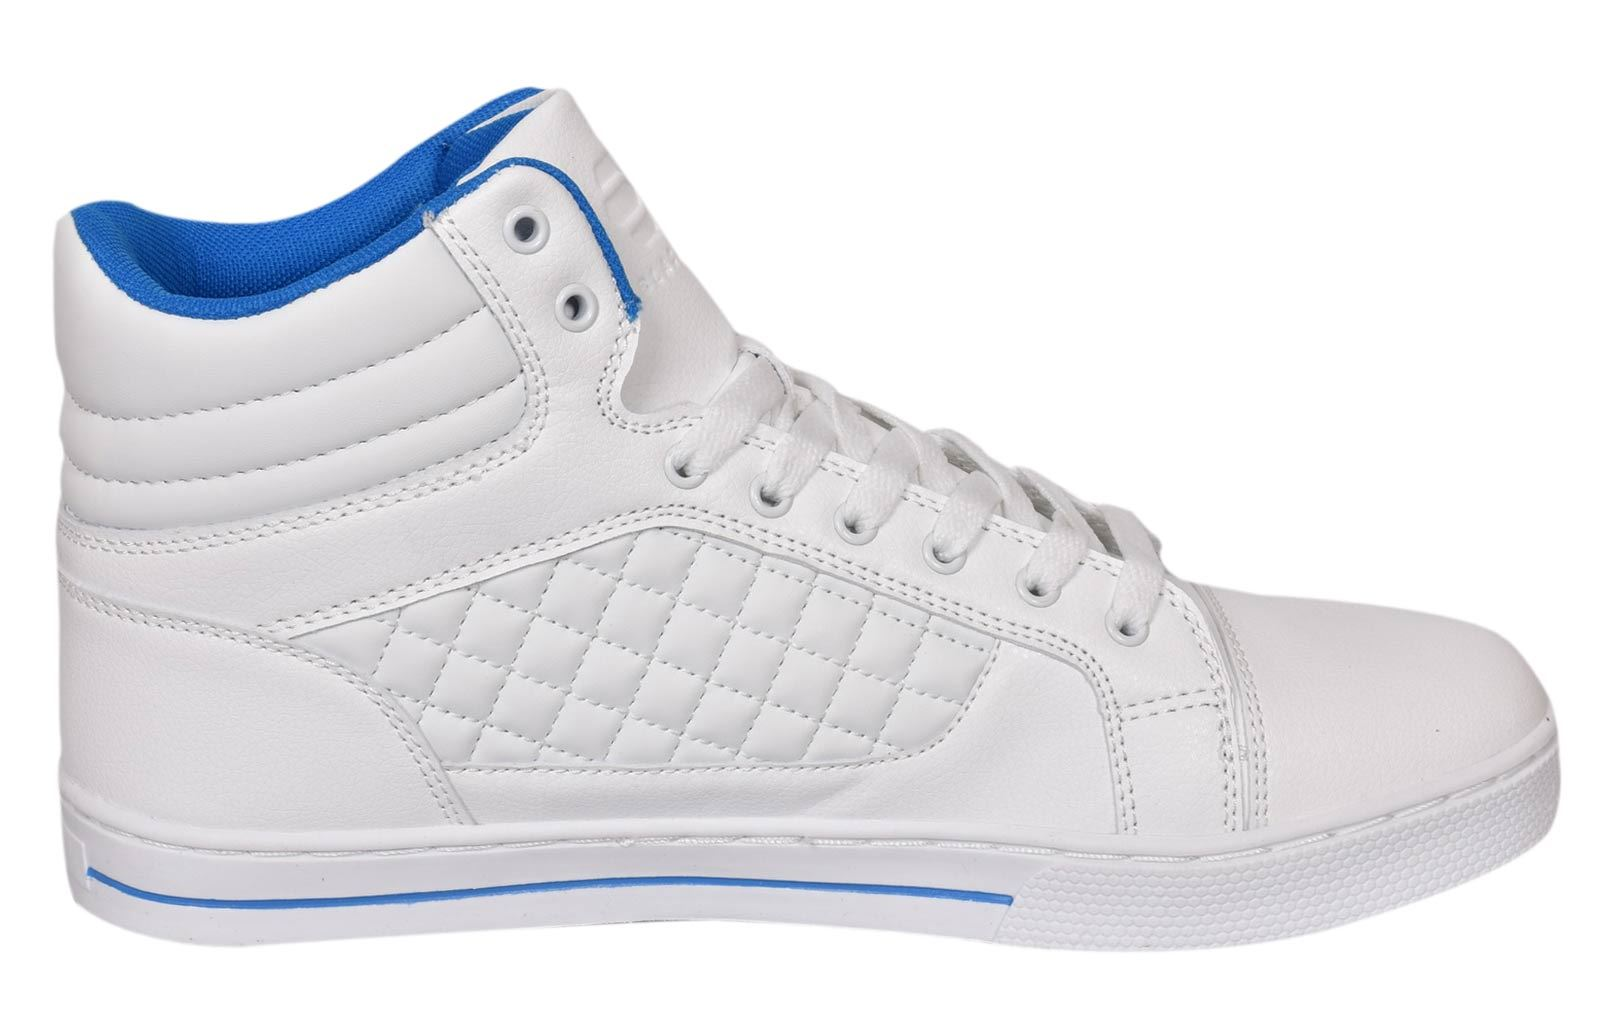 Mens-Trainers-Lace-up-Crosshatch-High-Tops-Ankle-Padded-Shoes-New-UK-Sizes-7-12 thumbnail 21